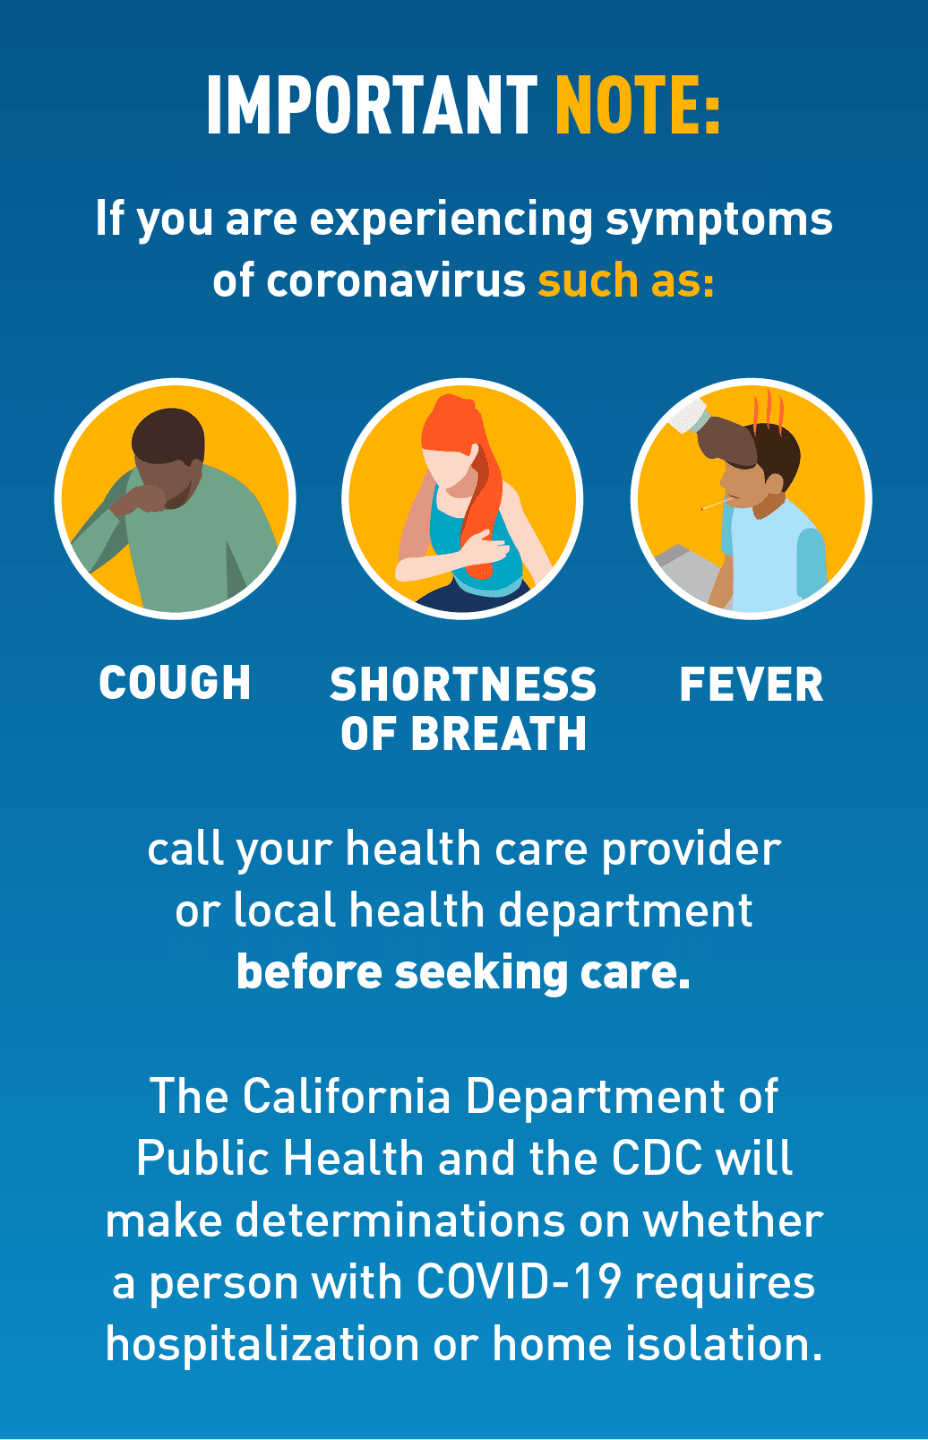 Graphic of individuals with cough, shortness of breath and fever.